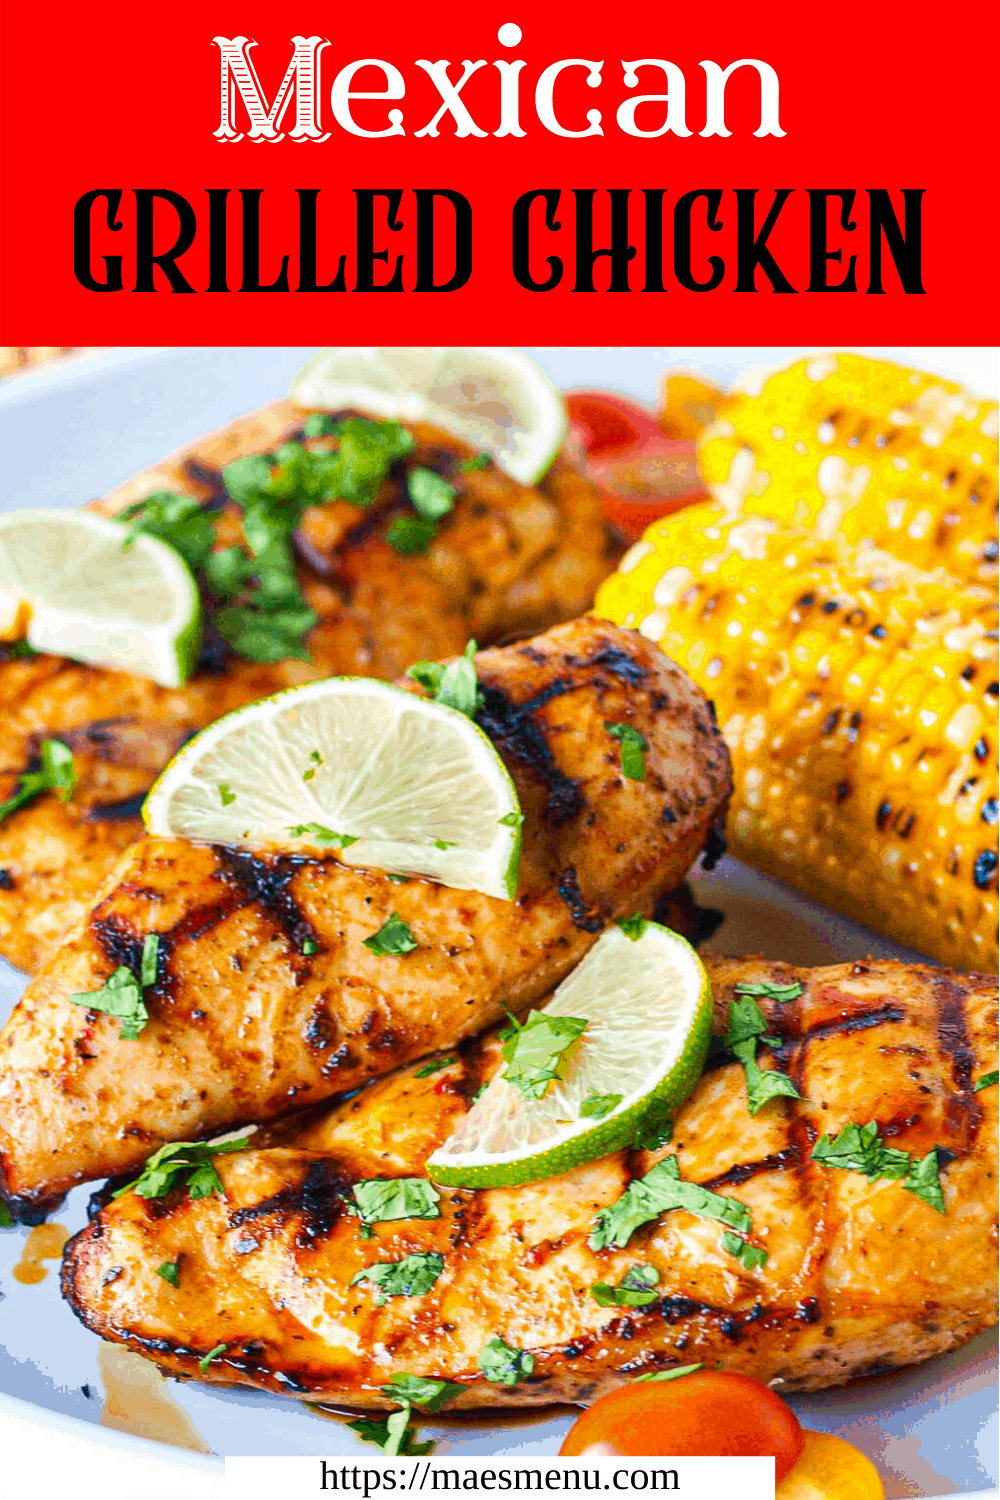 My pinterest pin for Mexican grilled chicken.  The picture has grilled chicken breasts with lime slices and cilantro on top with corn in the background.